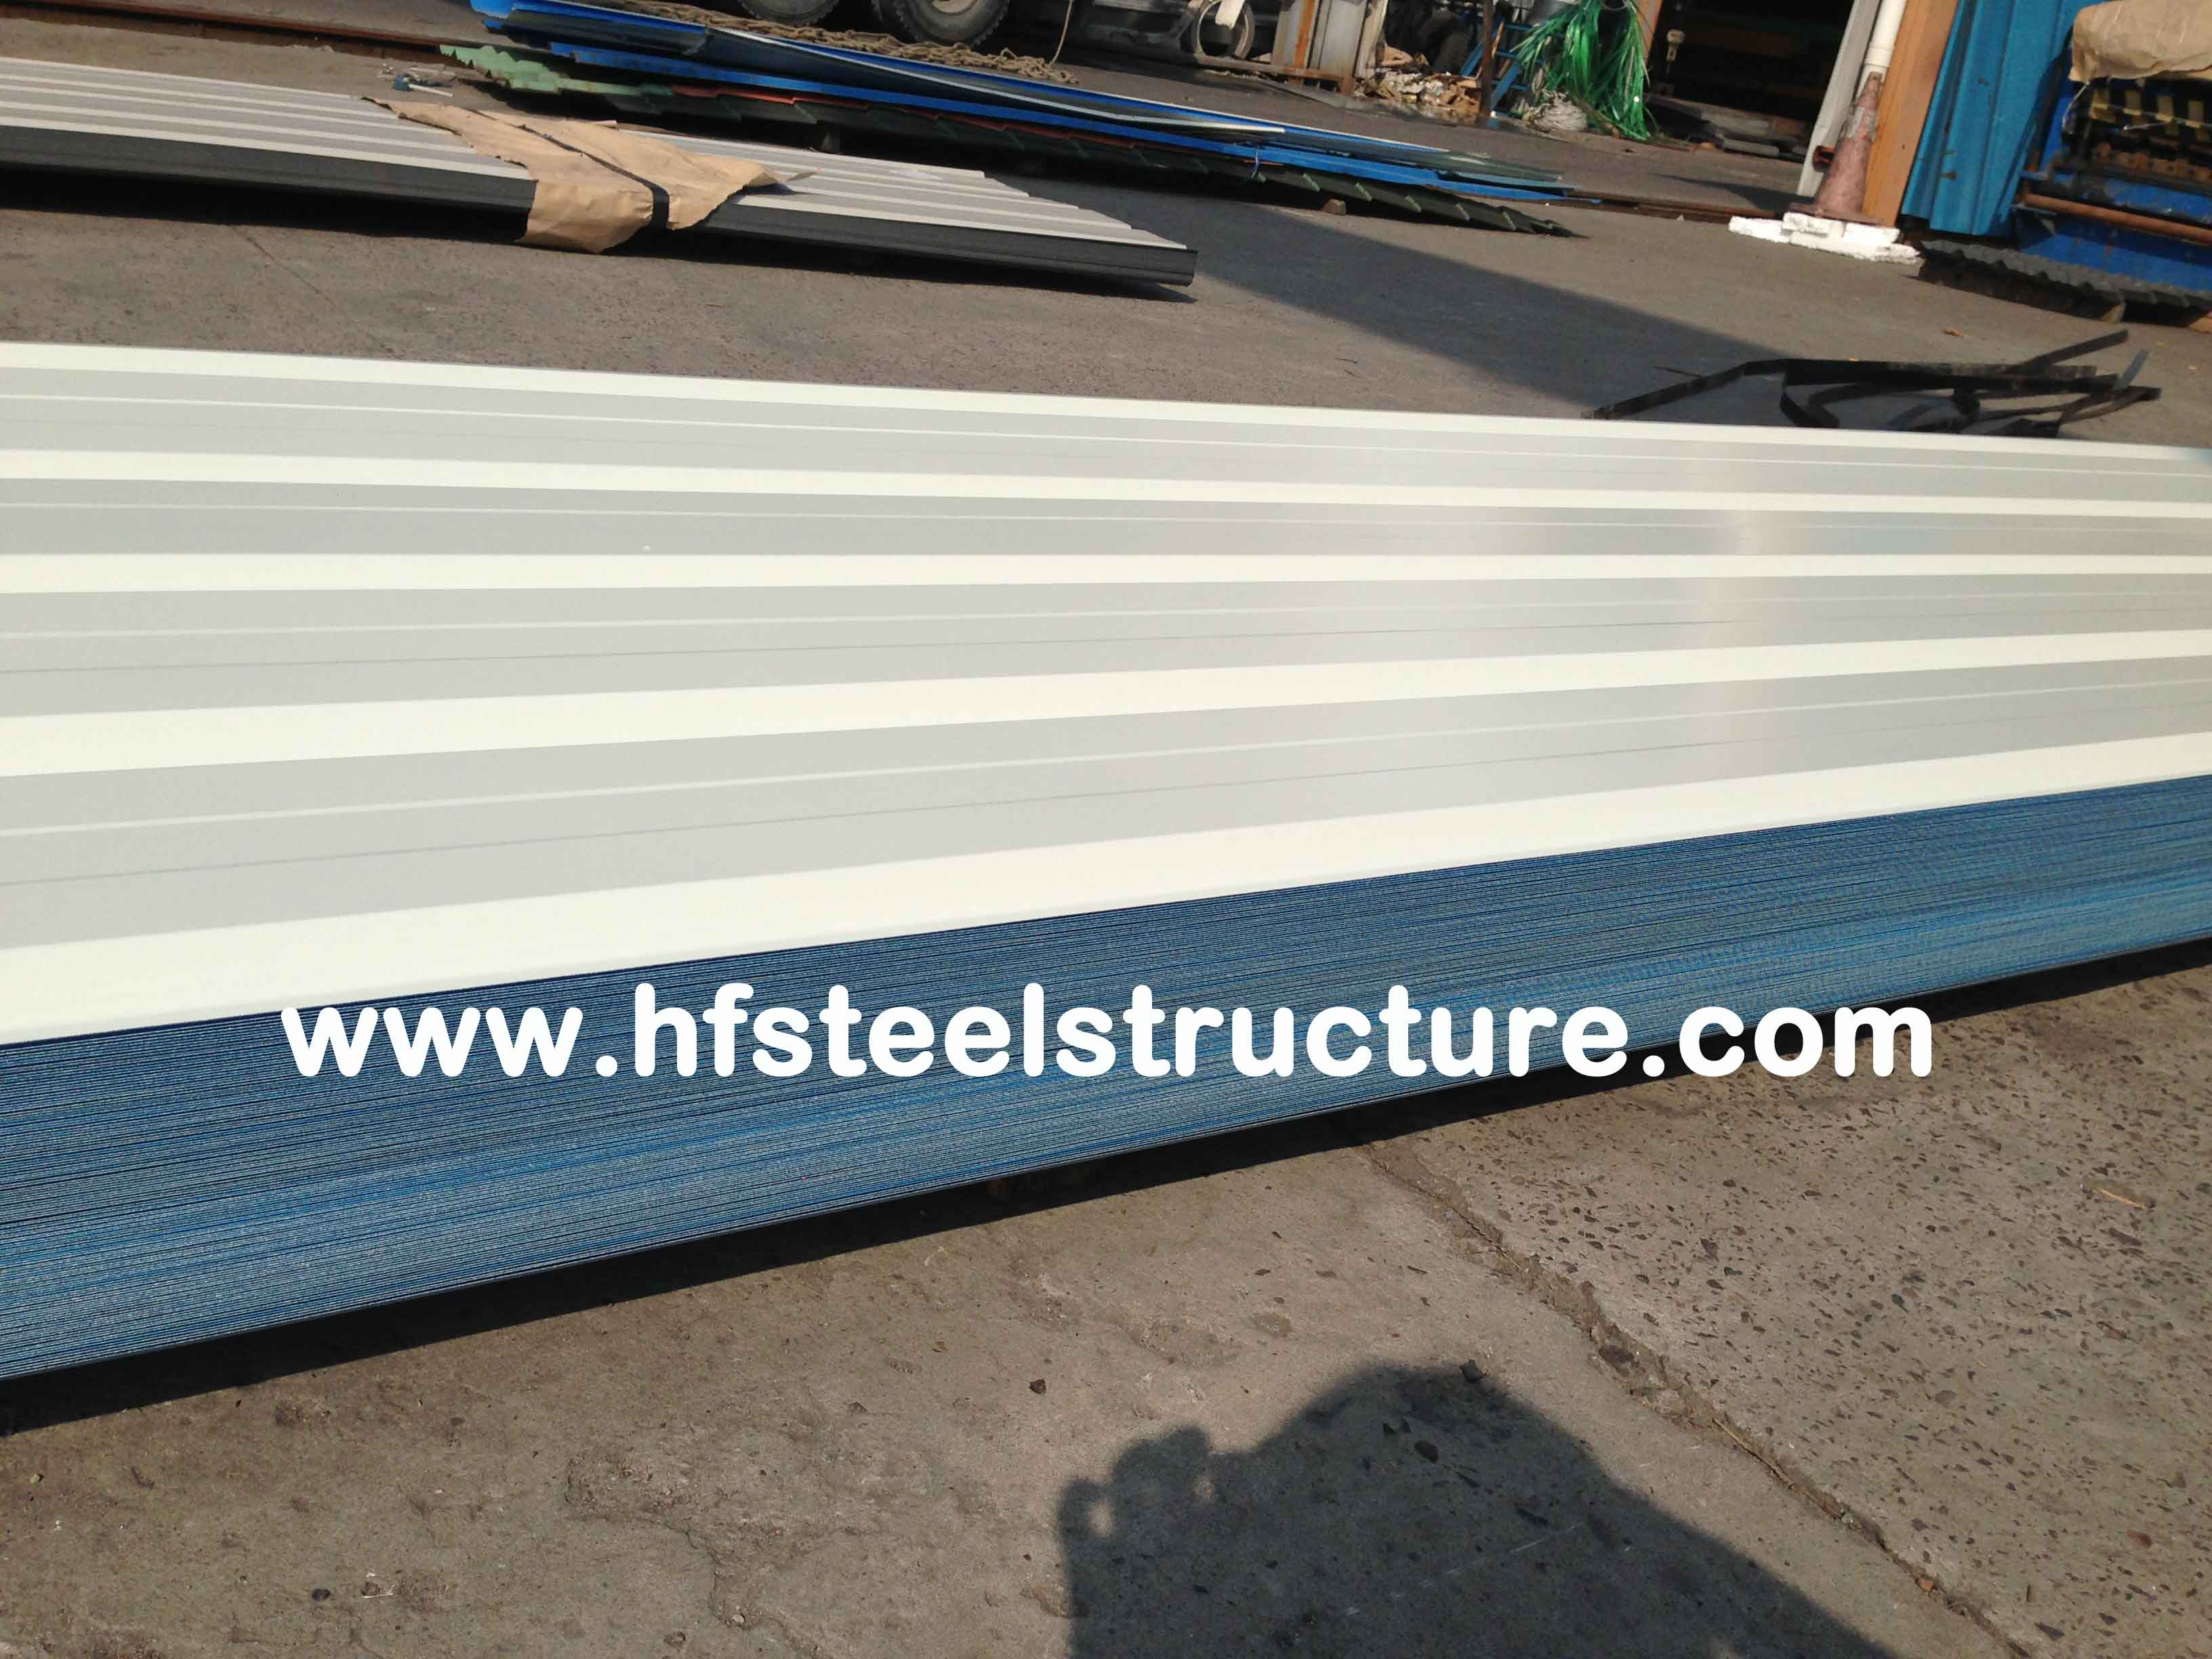 High Strength Steel Plate Metal Roofing Sheets With 40 - 275G / M2 Zinc Coating